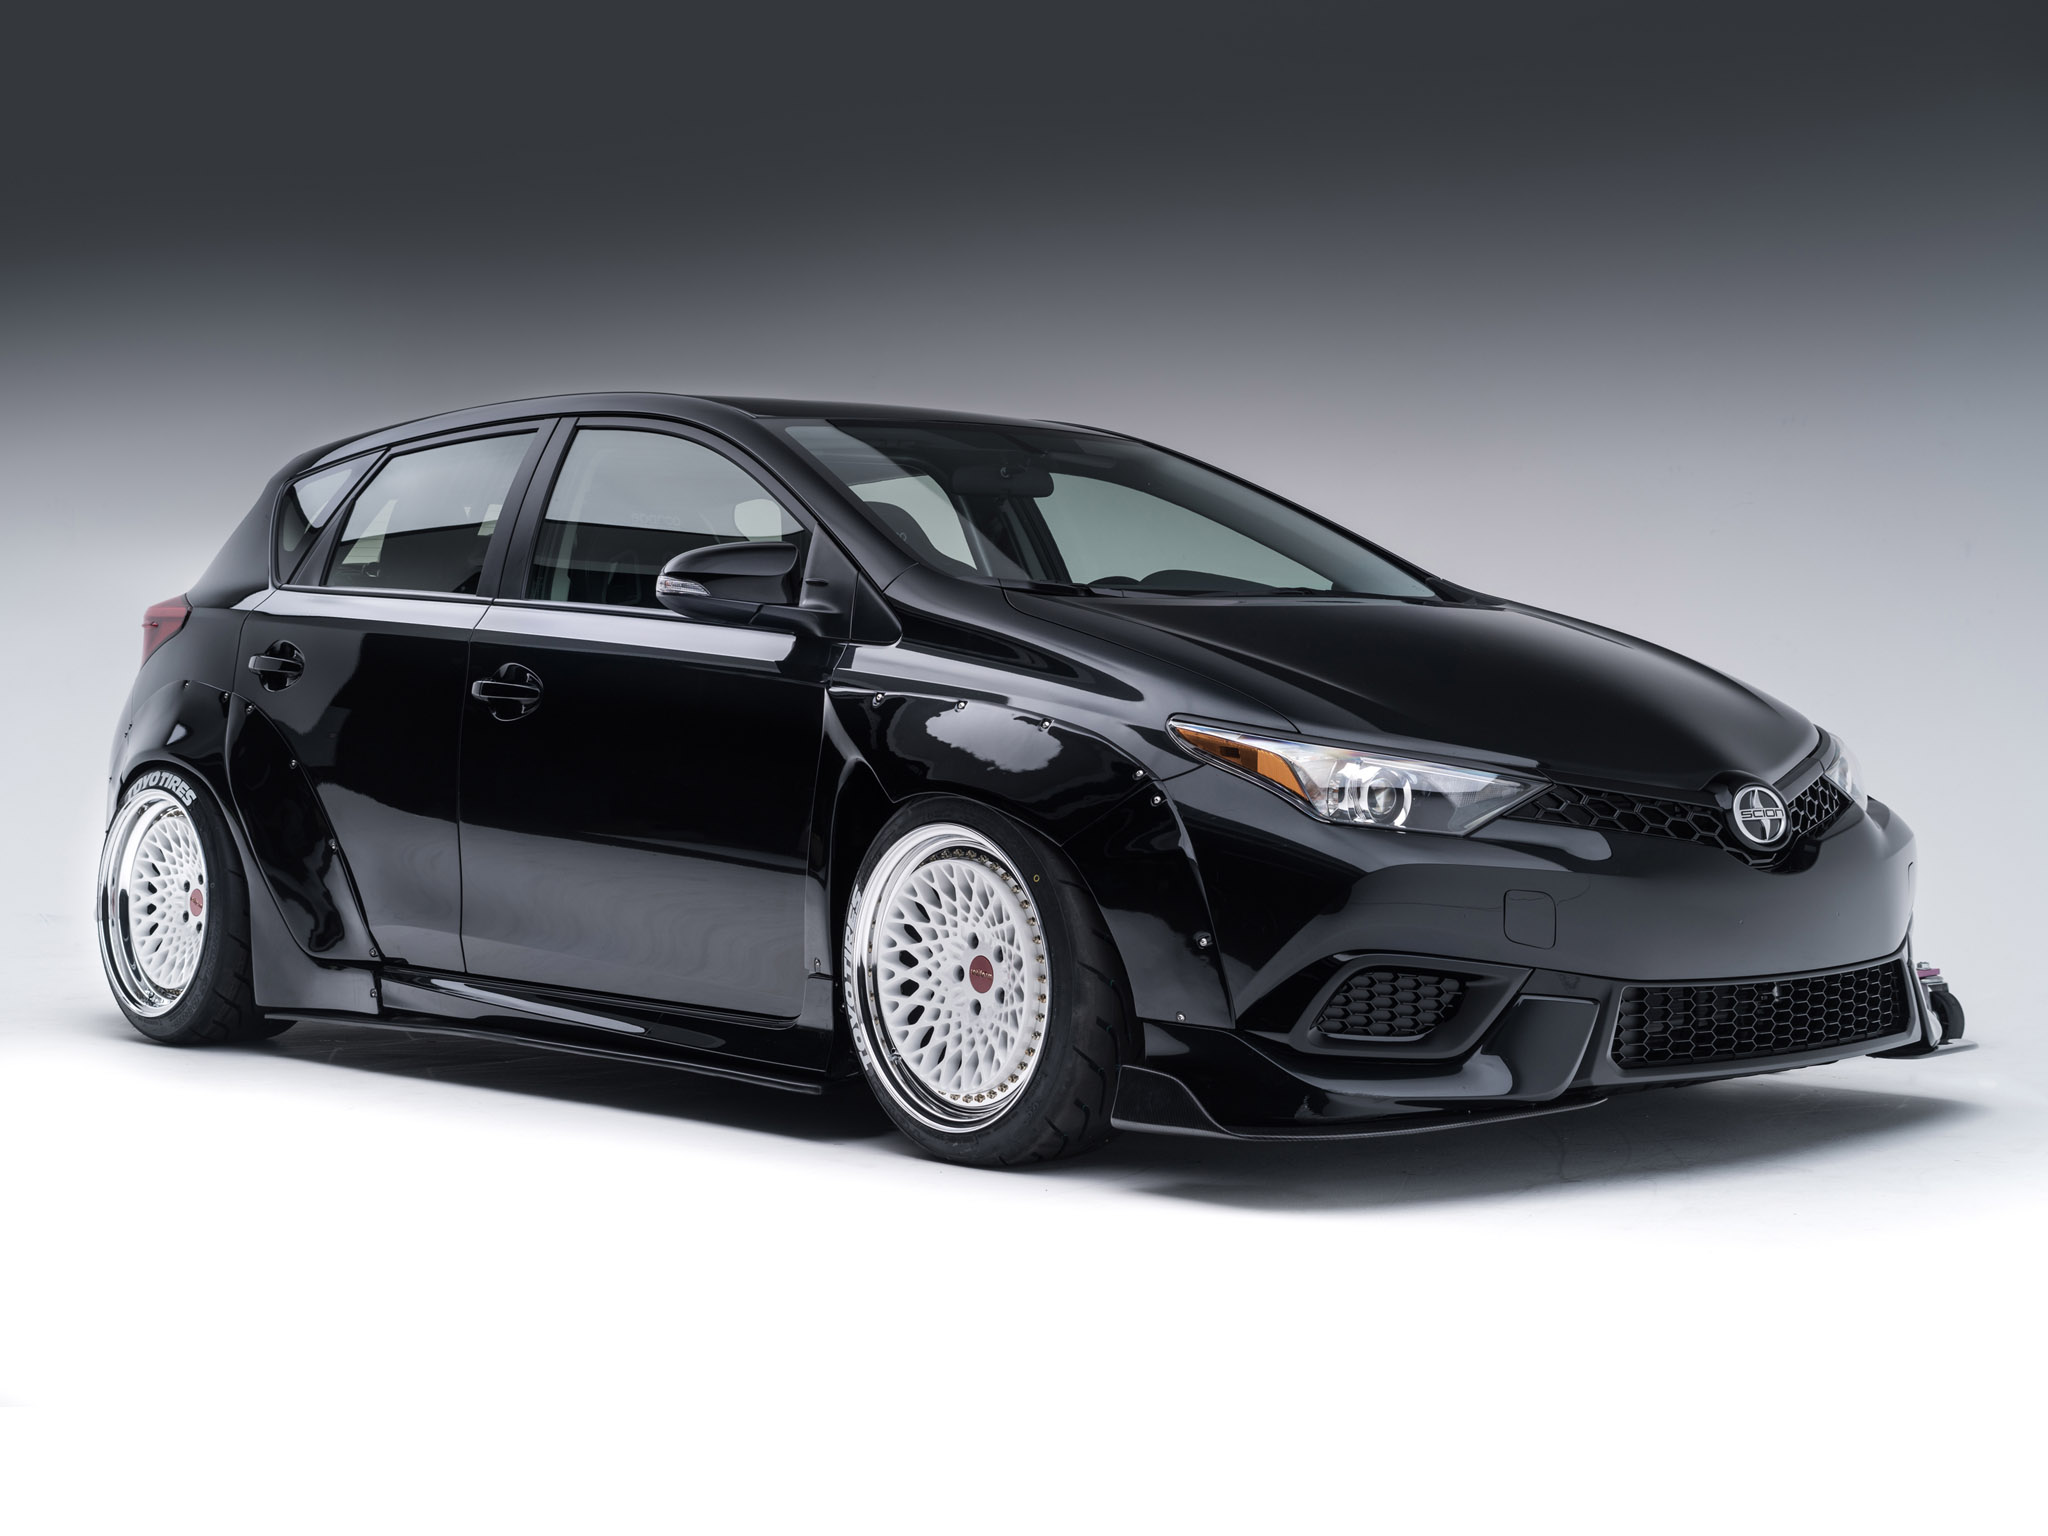 2015 Scion IM by Crooks and Castles